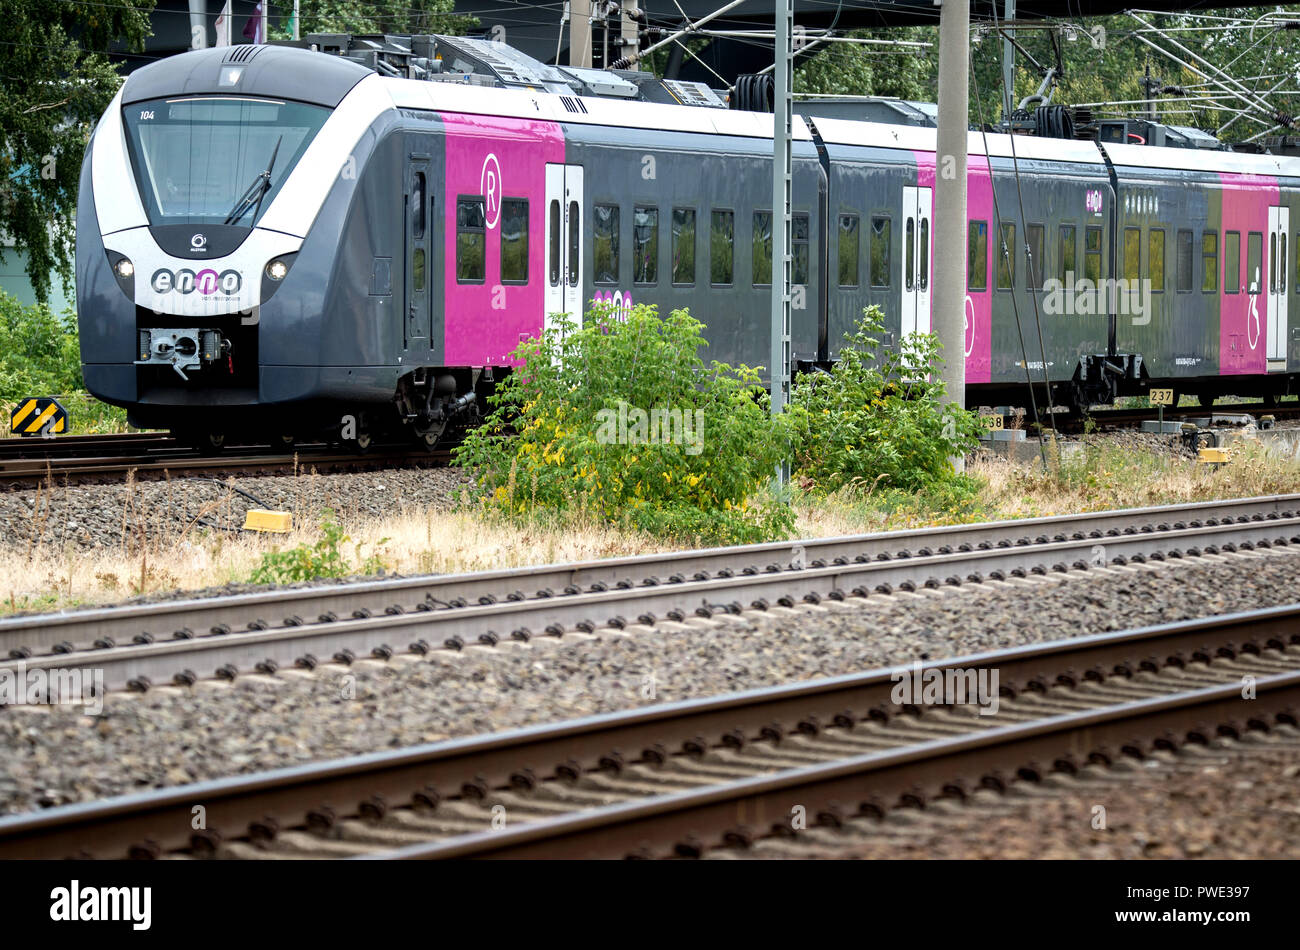 Wolfsburg, Lower Saxony. 21st Sep, 2018. 21 September 2018, Germany, Wolfsburg: A local train from Enno, a brand of Metronom Eisenbahngesellschaft mbH, enters the main station. Enno operates local public transport on railway lines in the Hannover-Braunschweig-Goettingen-Wolfsburg metropolitan region. Credit: Hauke-Christian Dittrich/dpa/Alamy Live News - Stock Image